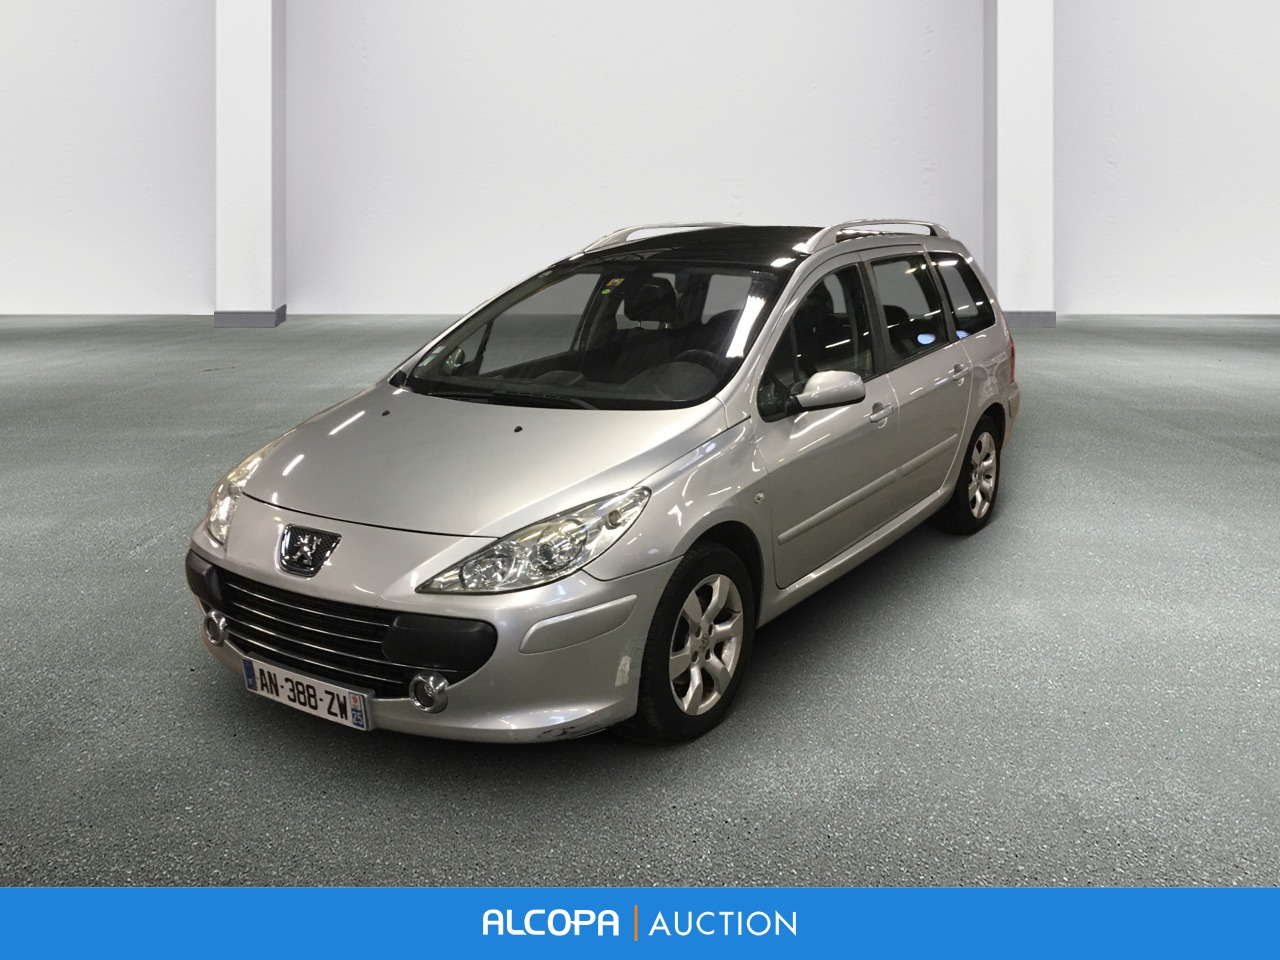 peugeot 307 sw 307 sw 1 6 hdi 16v 110ch fap sport pack alcopa auction. Black Bedroom Furniture Sets. Home Design Ideas